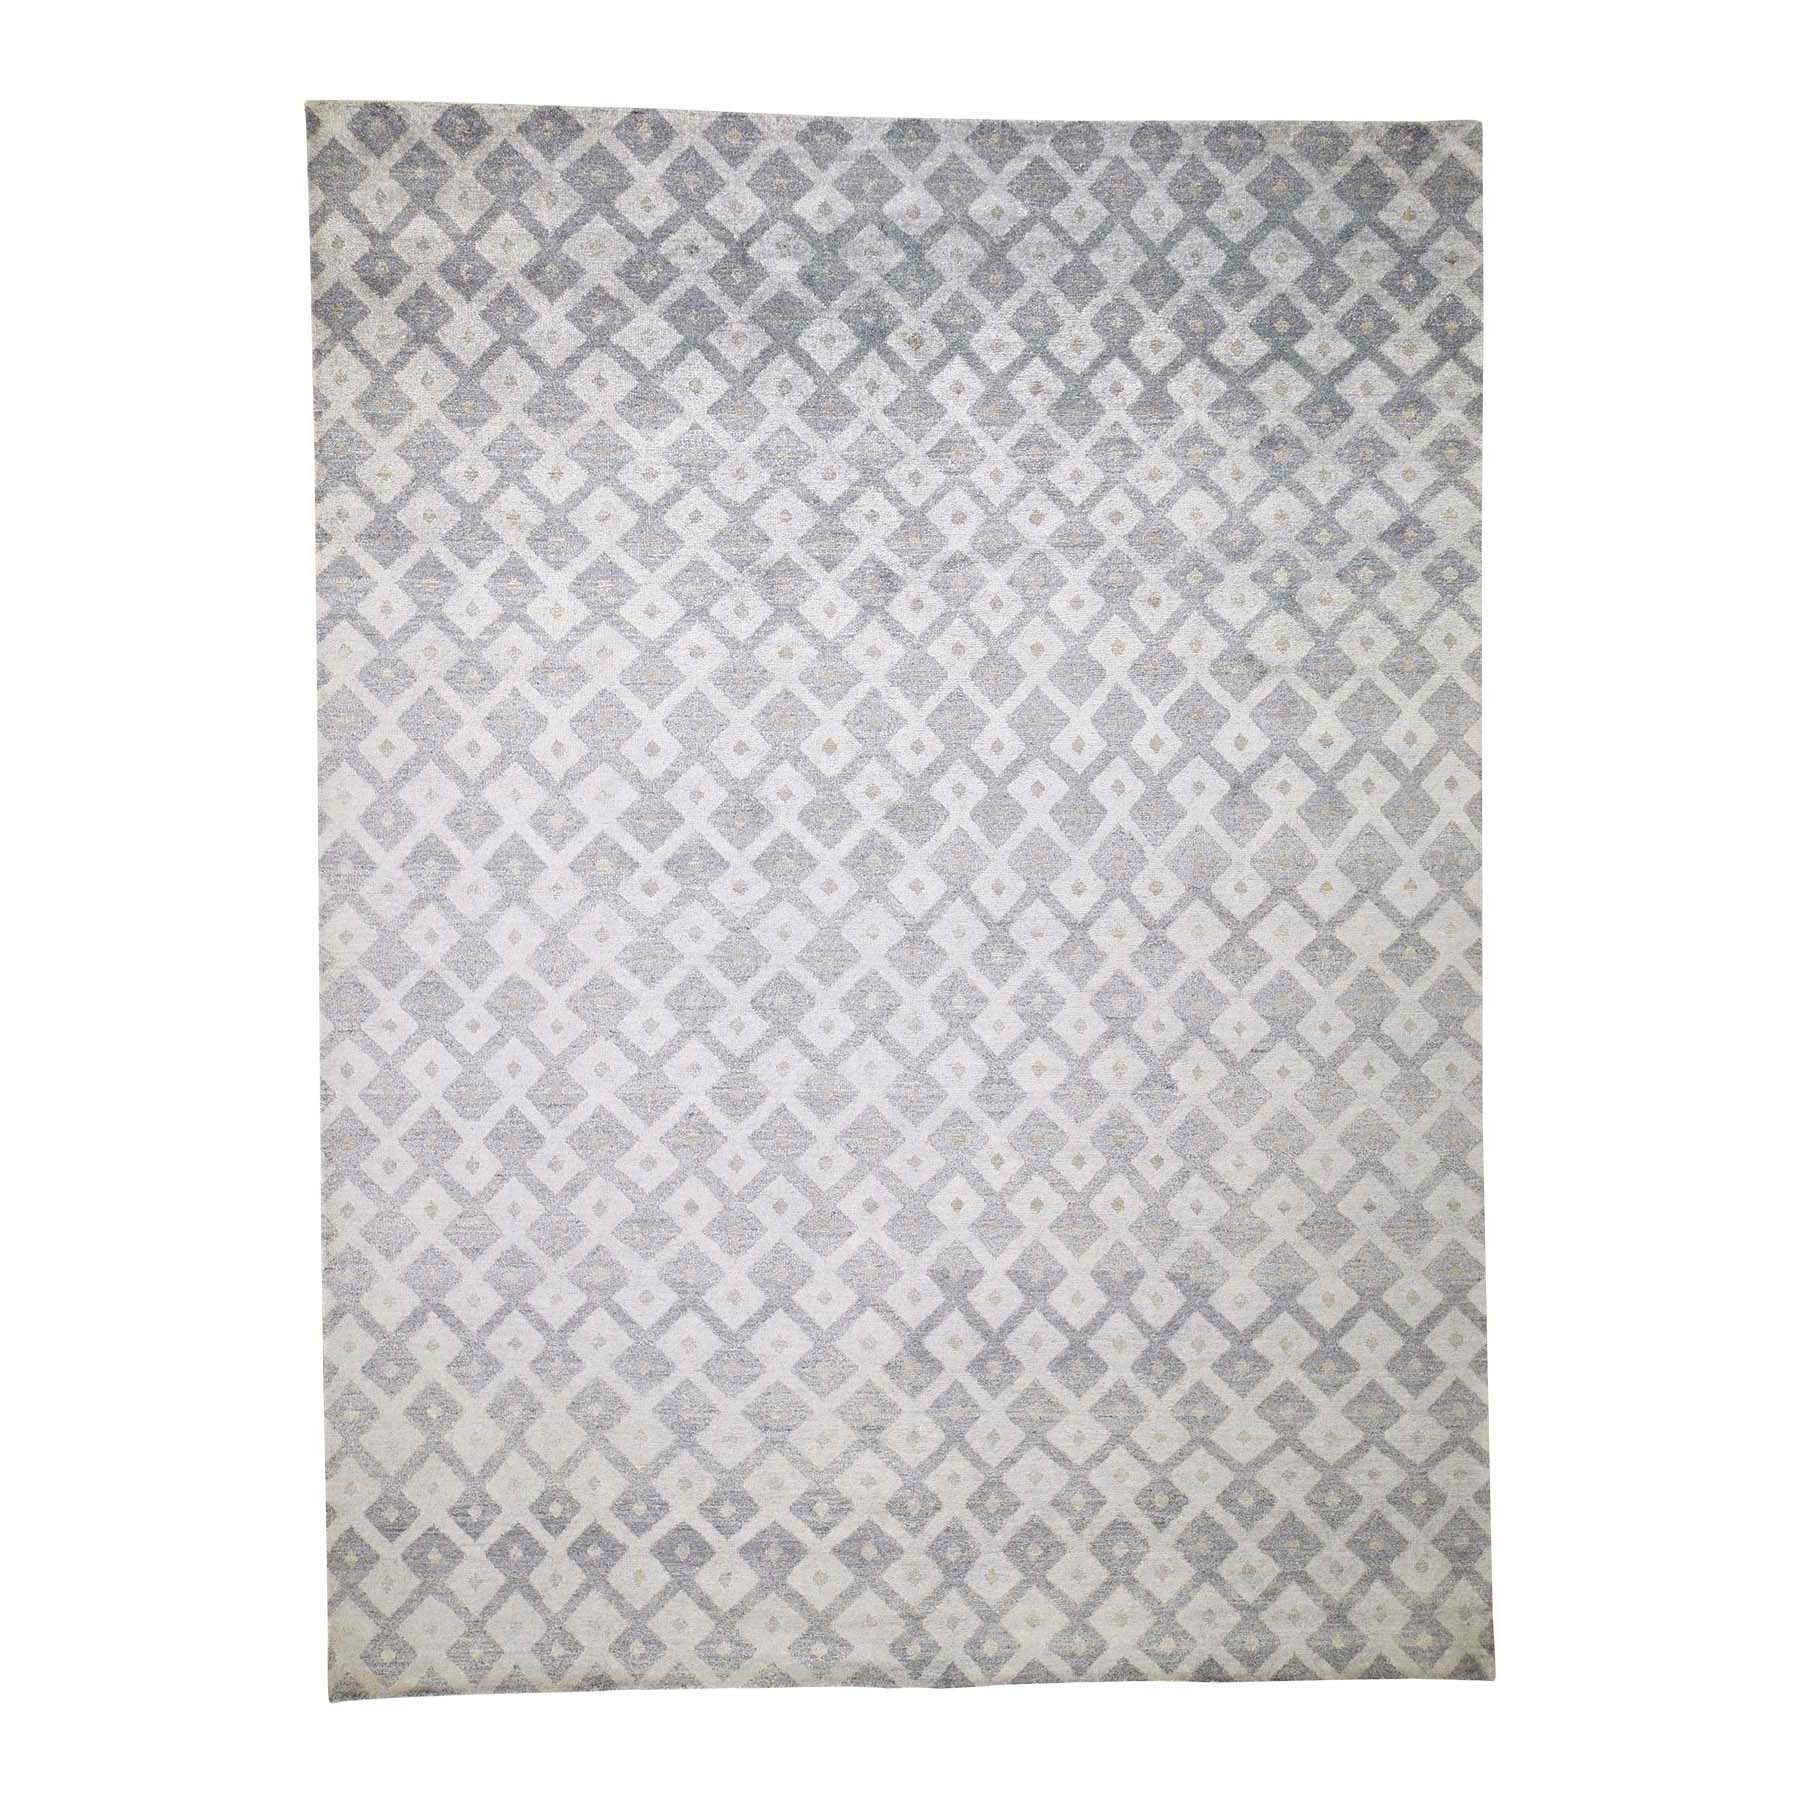 Mid Century Modern Collection Hand Knotted Grey Rug No: 0189416